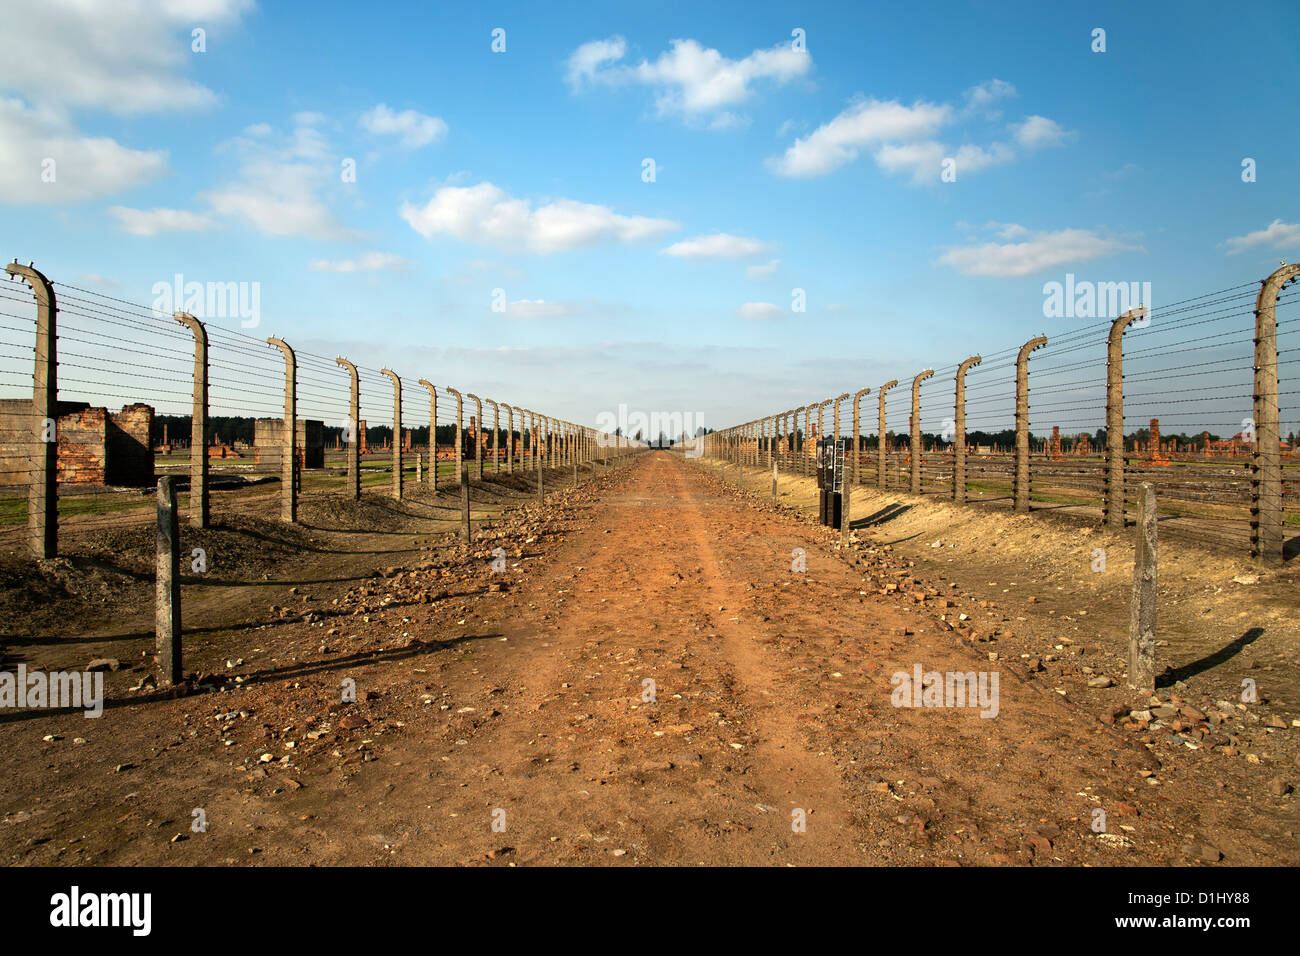 View across the former Auschwitz II–Birkenau concentration camp in southern Poland. - Stock Image